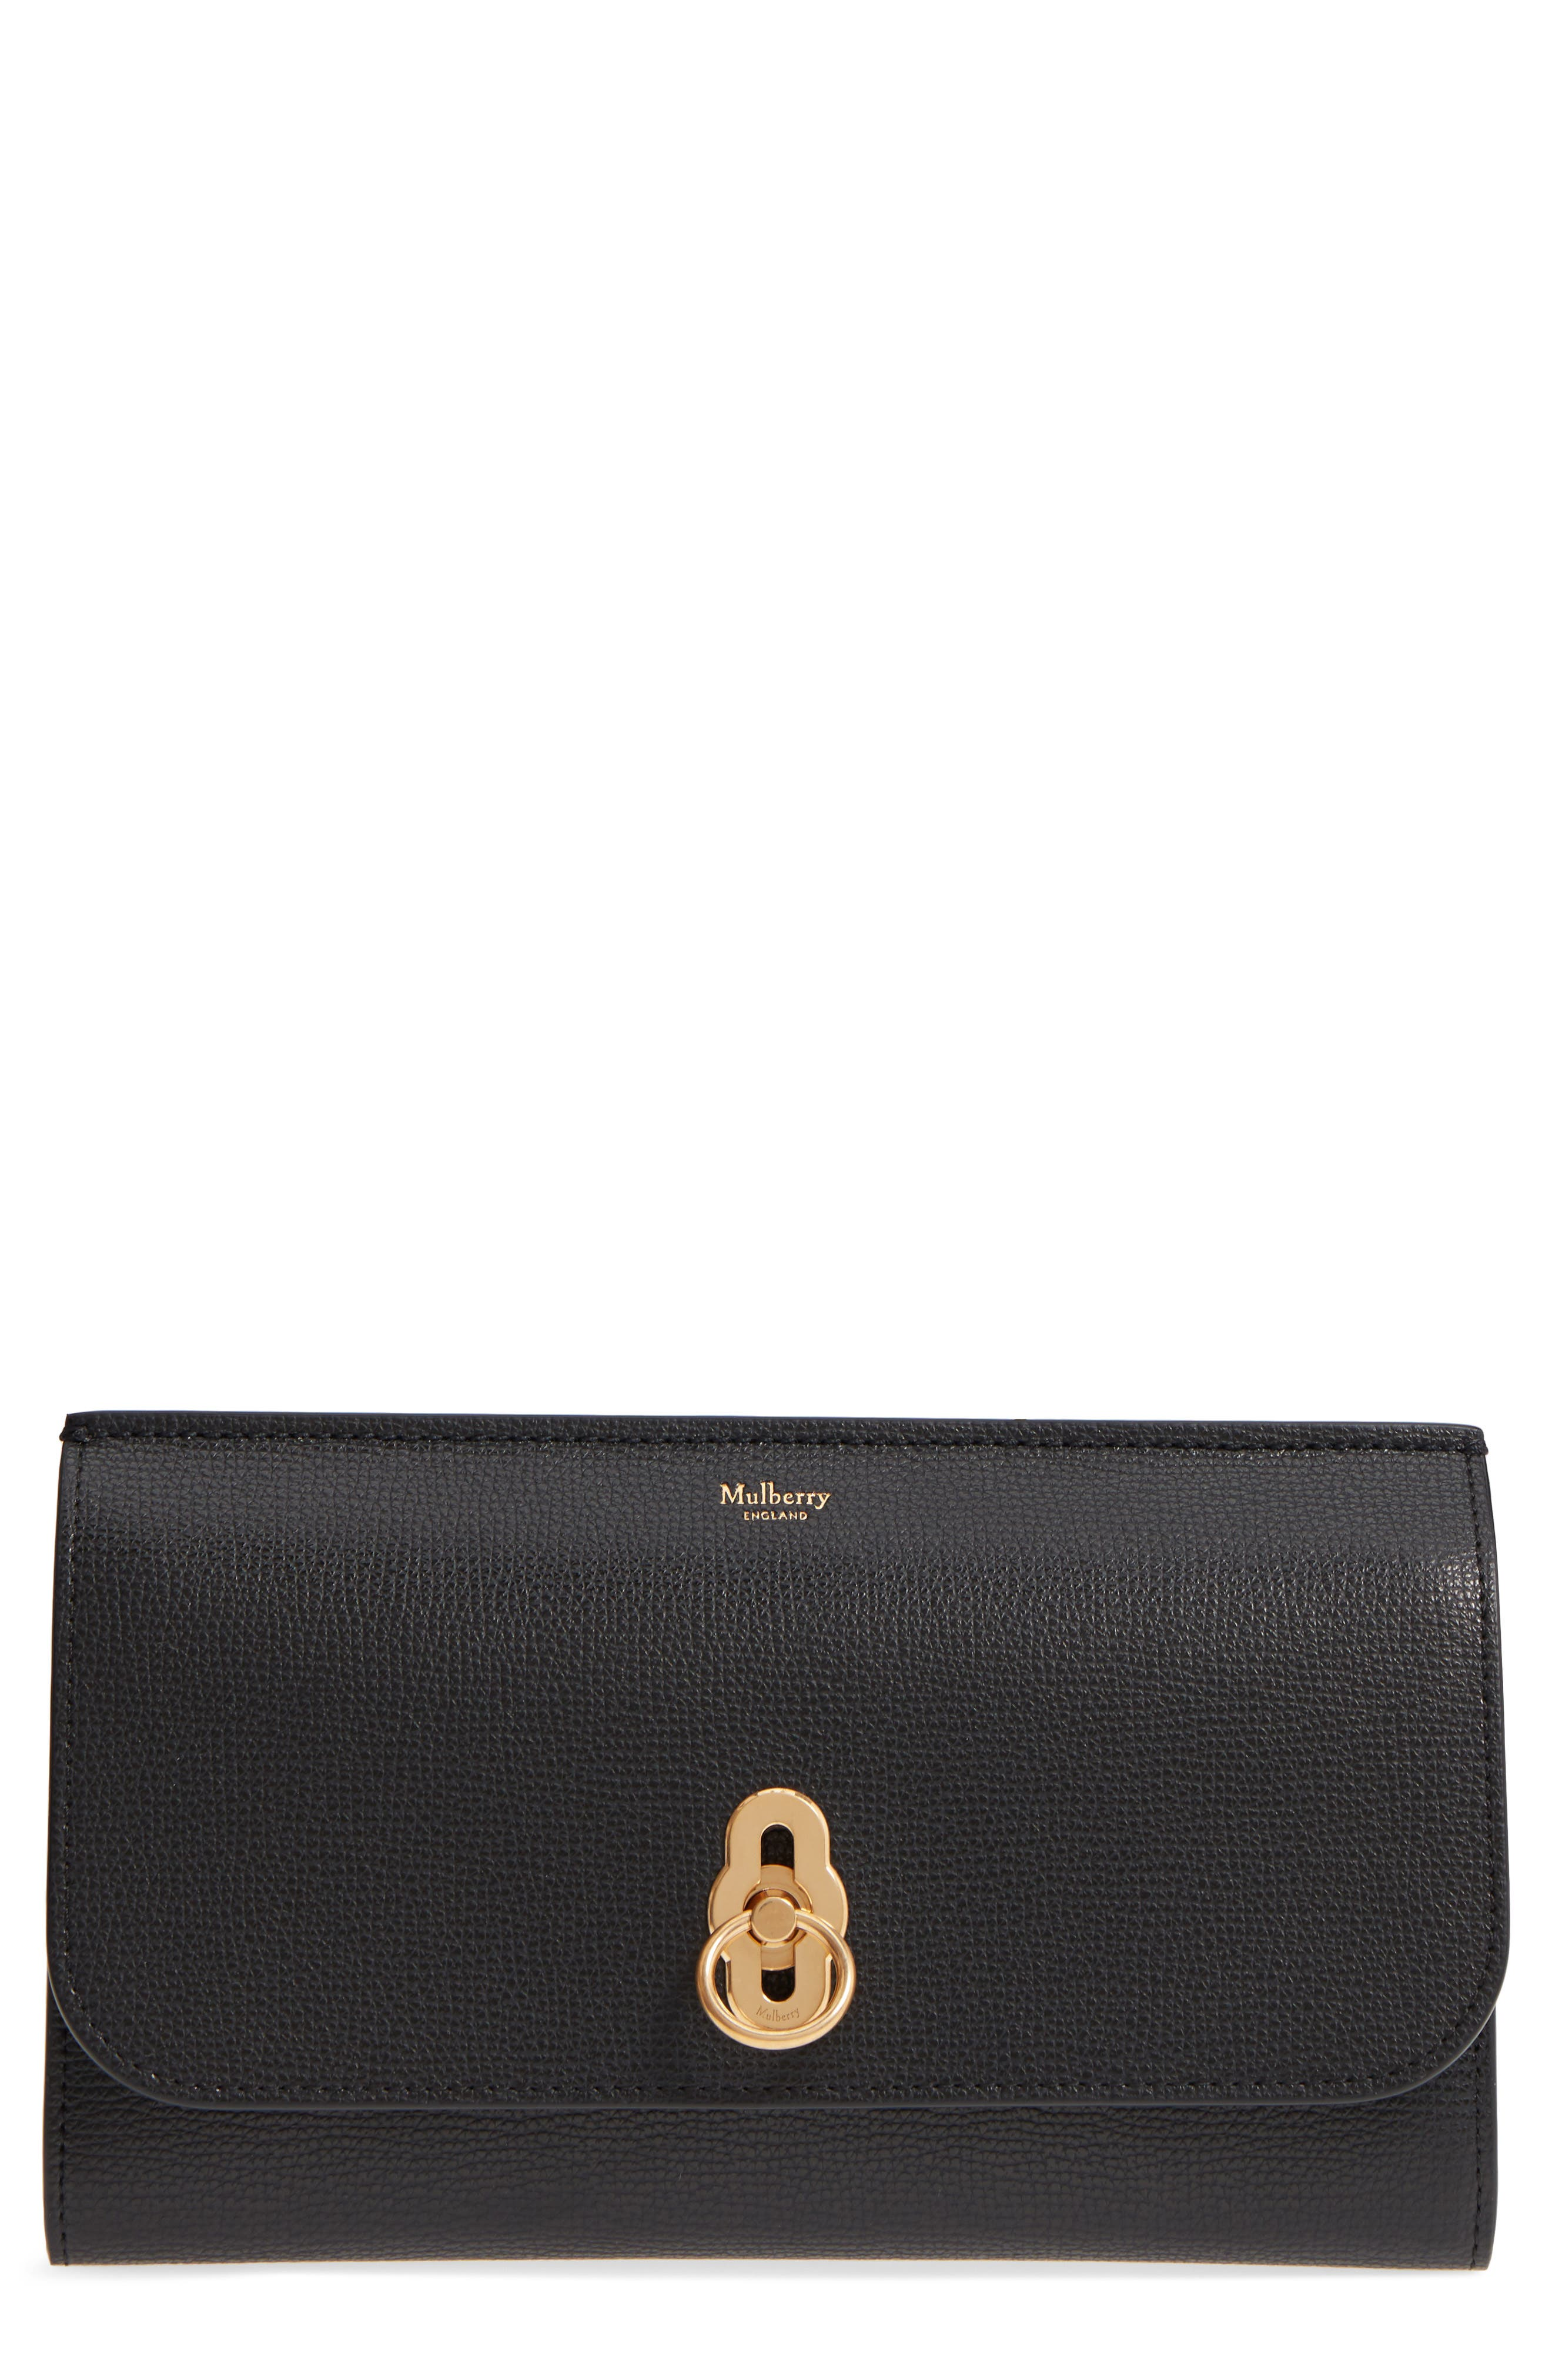 304071cfa6 Mulberry Handbags   Wallets for Women